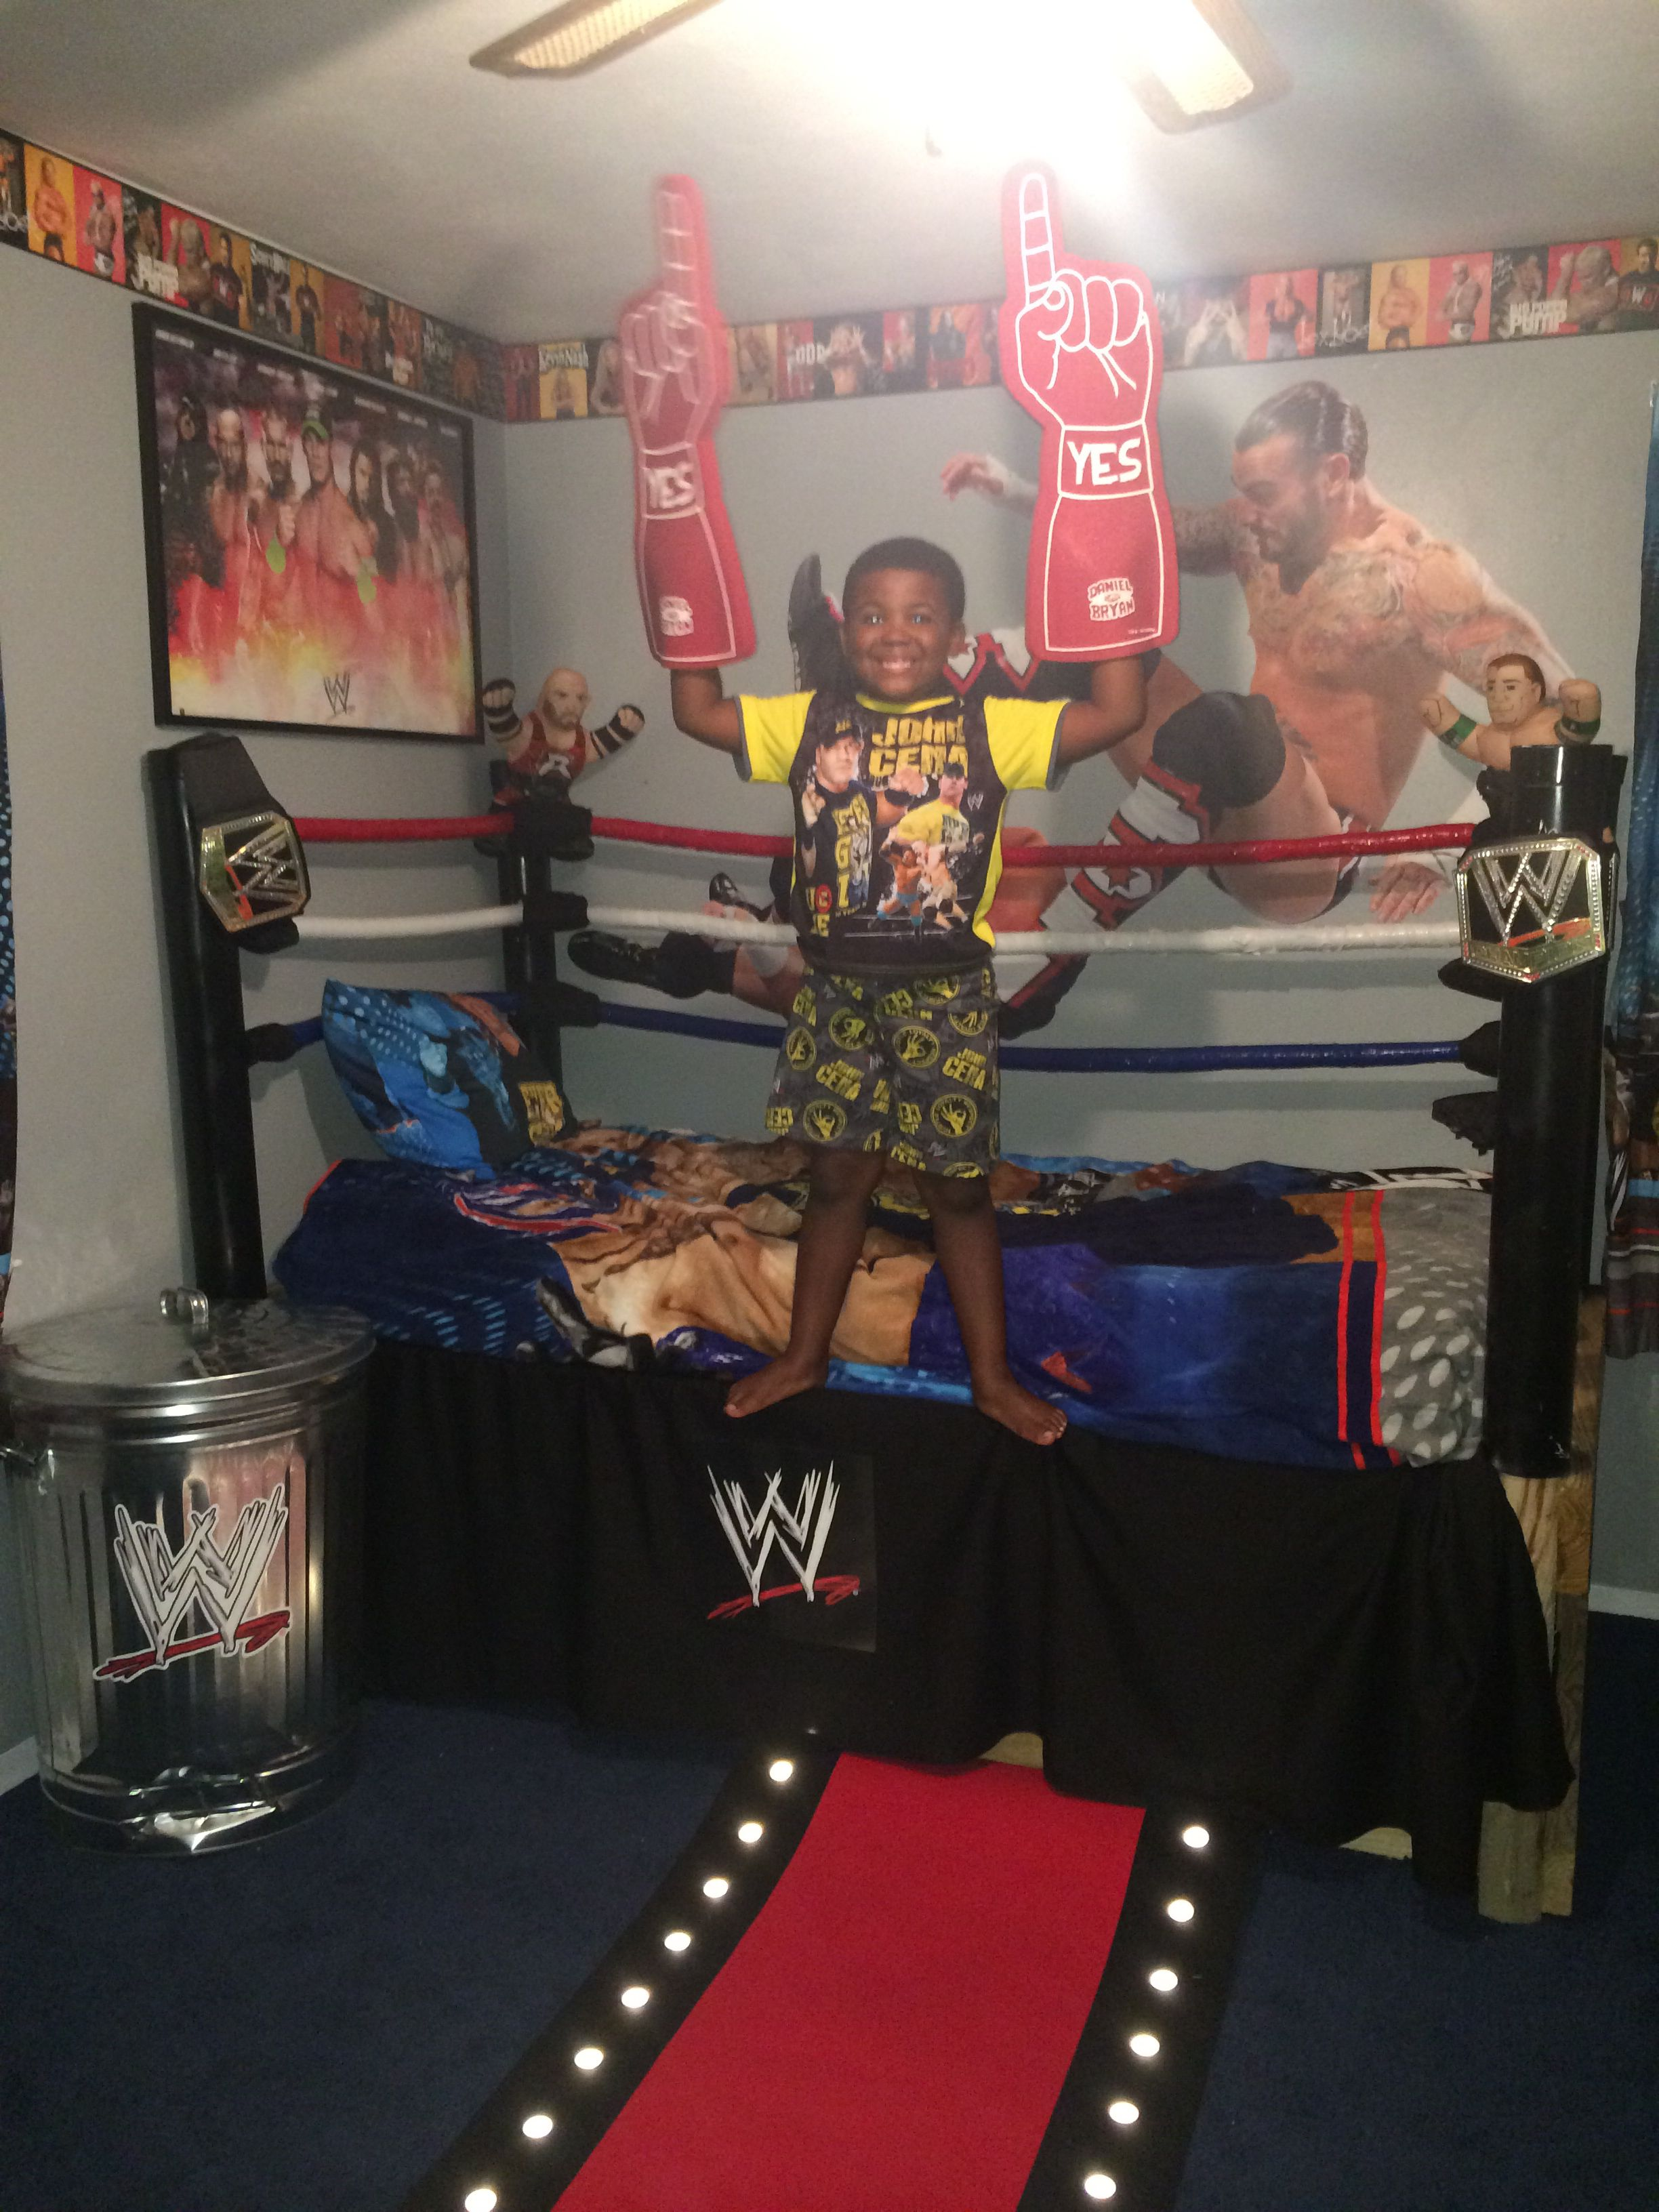 Delicieux WWE Custom Bedroom   Love The Idea Of Decorating A Steel Bin To Look Like A  Hardcore Weapon